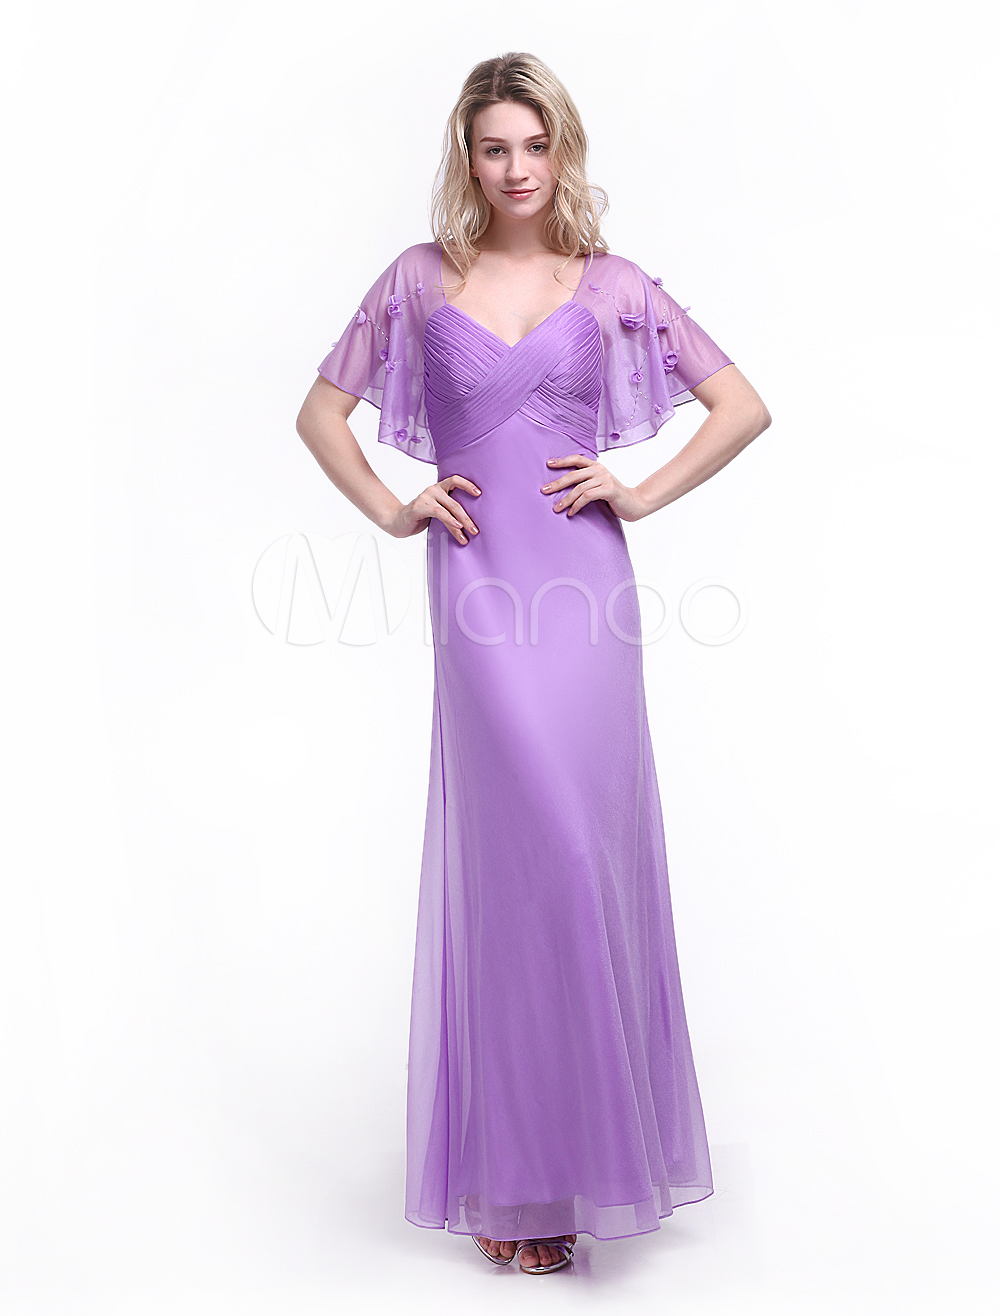 Lilac Evening Dress Beading Scoop Neck Short Sleeves Sheath Party Dress Milanoo